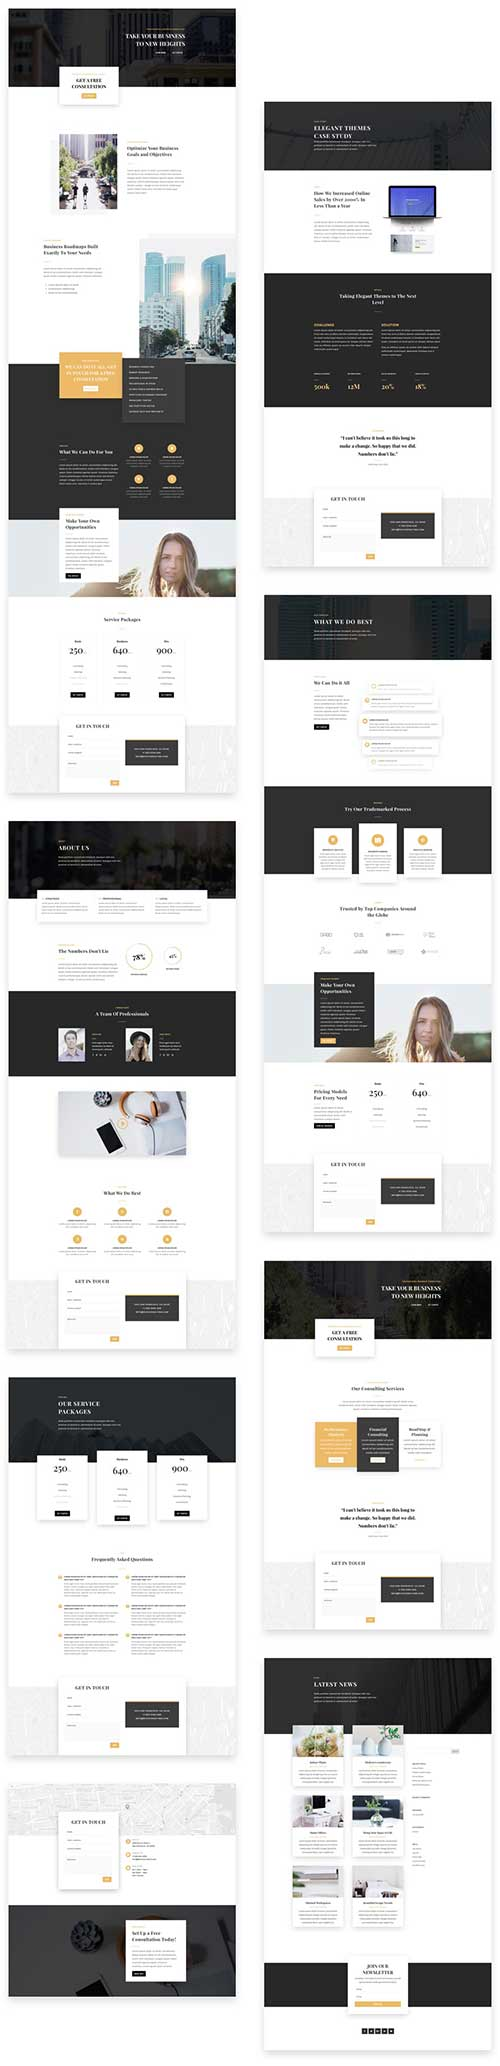 Business consultant layout pack layout divi theme layouts for Elegant themes divi review